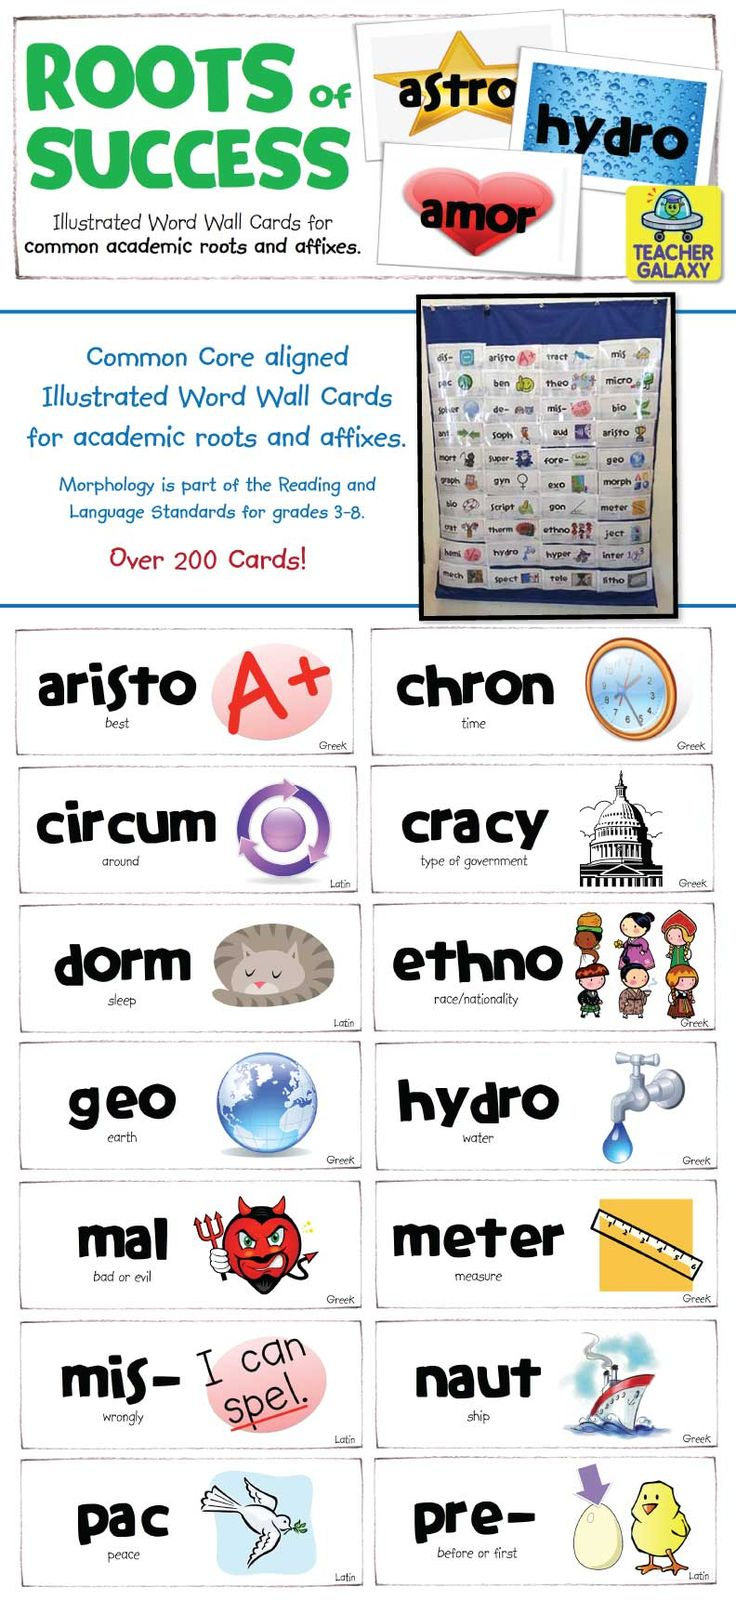 The Common Core Standards for grades 3 through 8 require students to be able to use knowledge of roots and affixes to determine the meaning of unknown words. This easy to use collection of colorfully illustrated word wall cards will help them do just that! There are over 200 cards illustrating the meaning of the most common roots, stems, and prefixes found in academic texts. The cards are designed for maximum visibility: simple borders, bold type, and high contrast pictures.